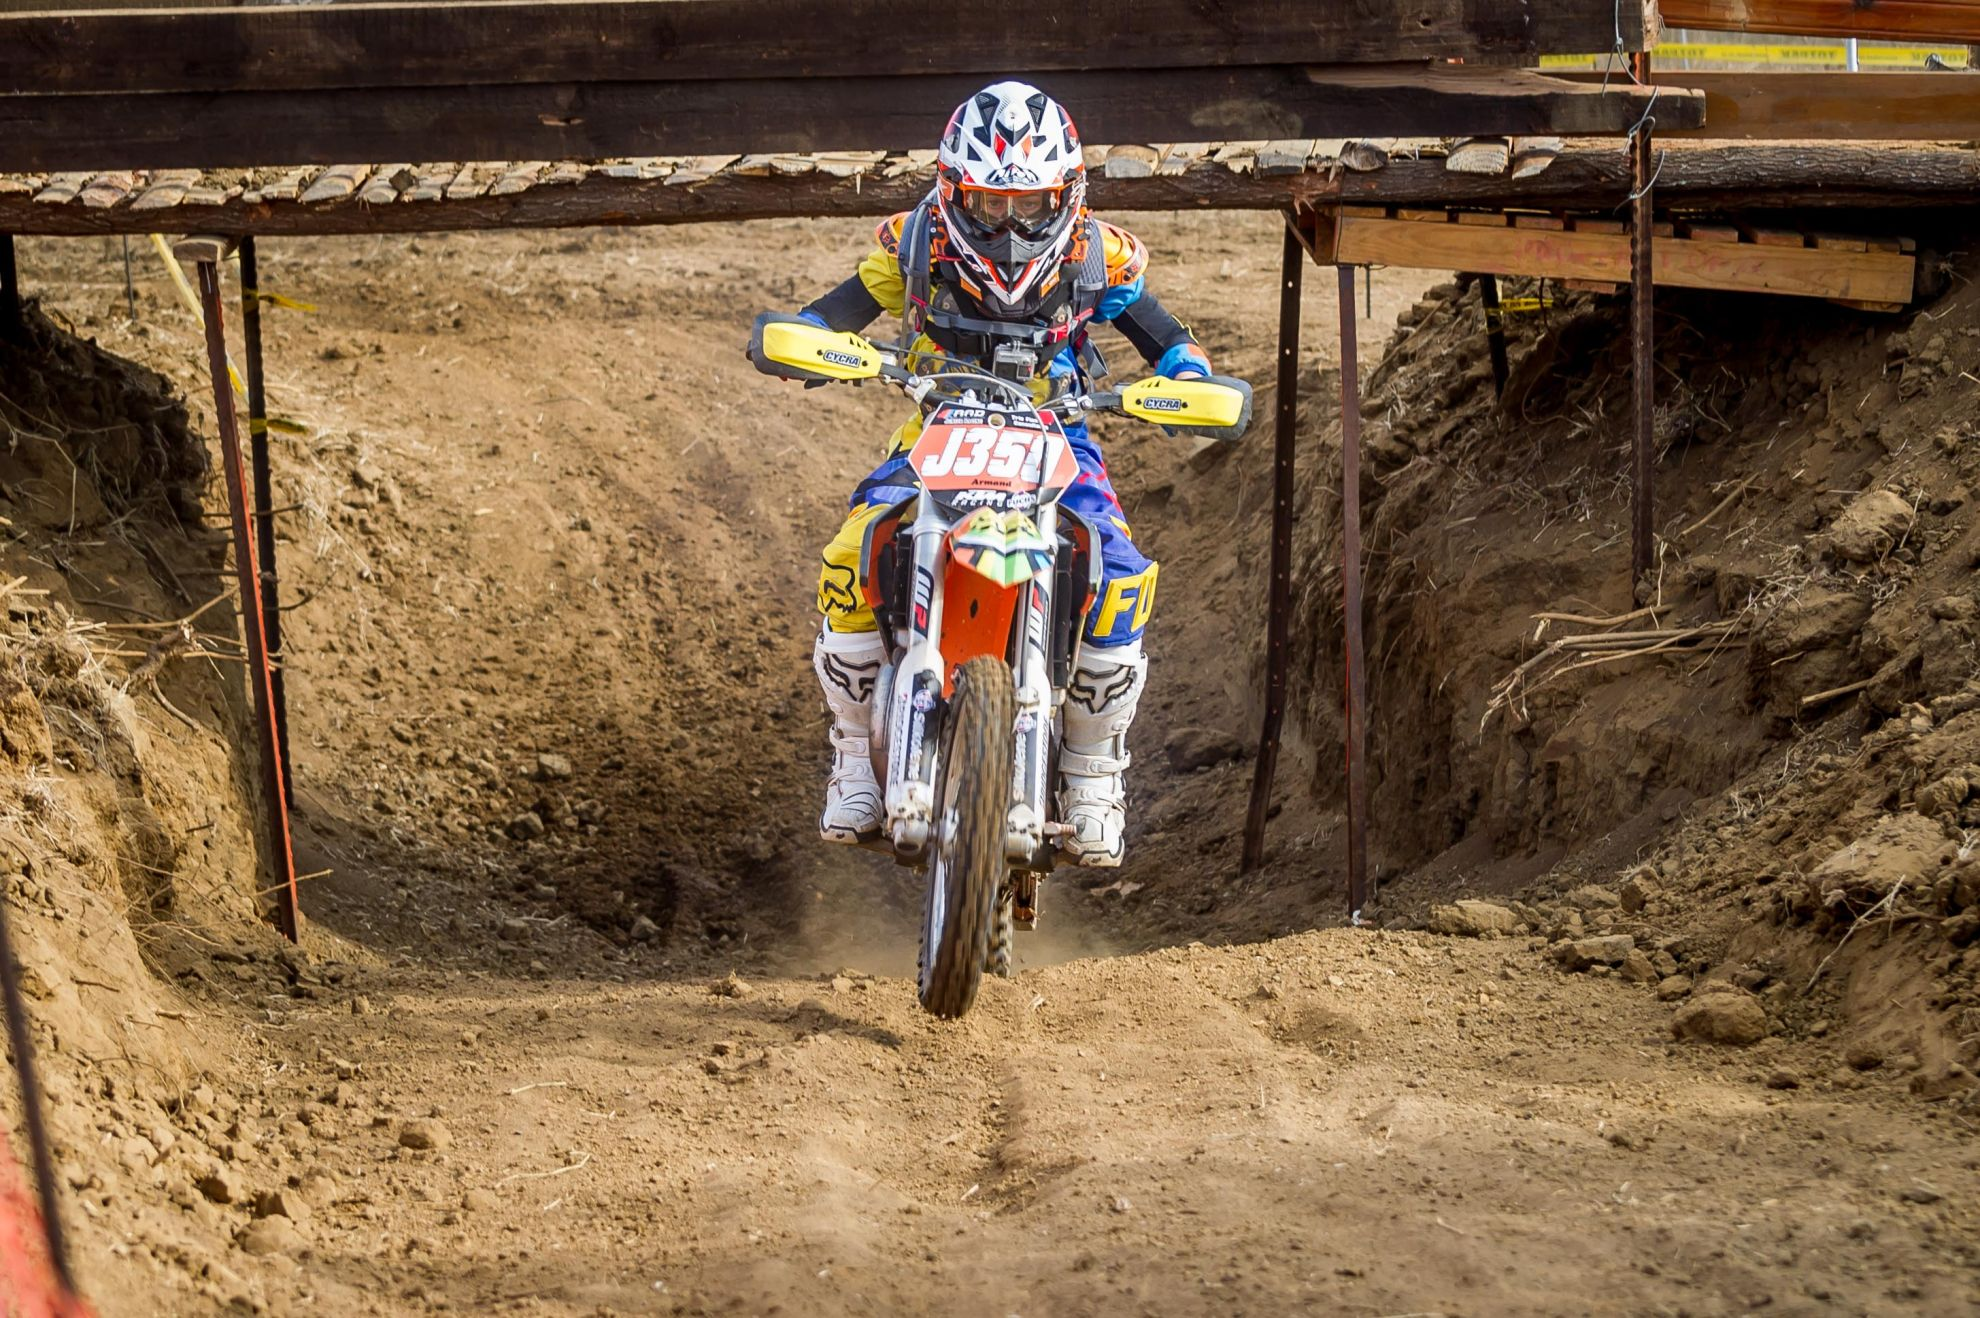 JUNIOR-NATIONAL-OFF-ROAD-MOTORCYCLE-QUAD-CHAMPIONSHIPS-Armand-Fourie